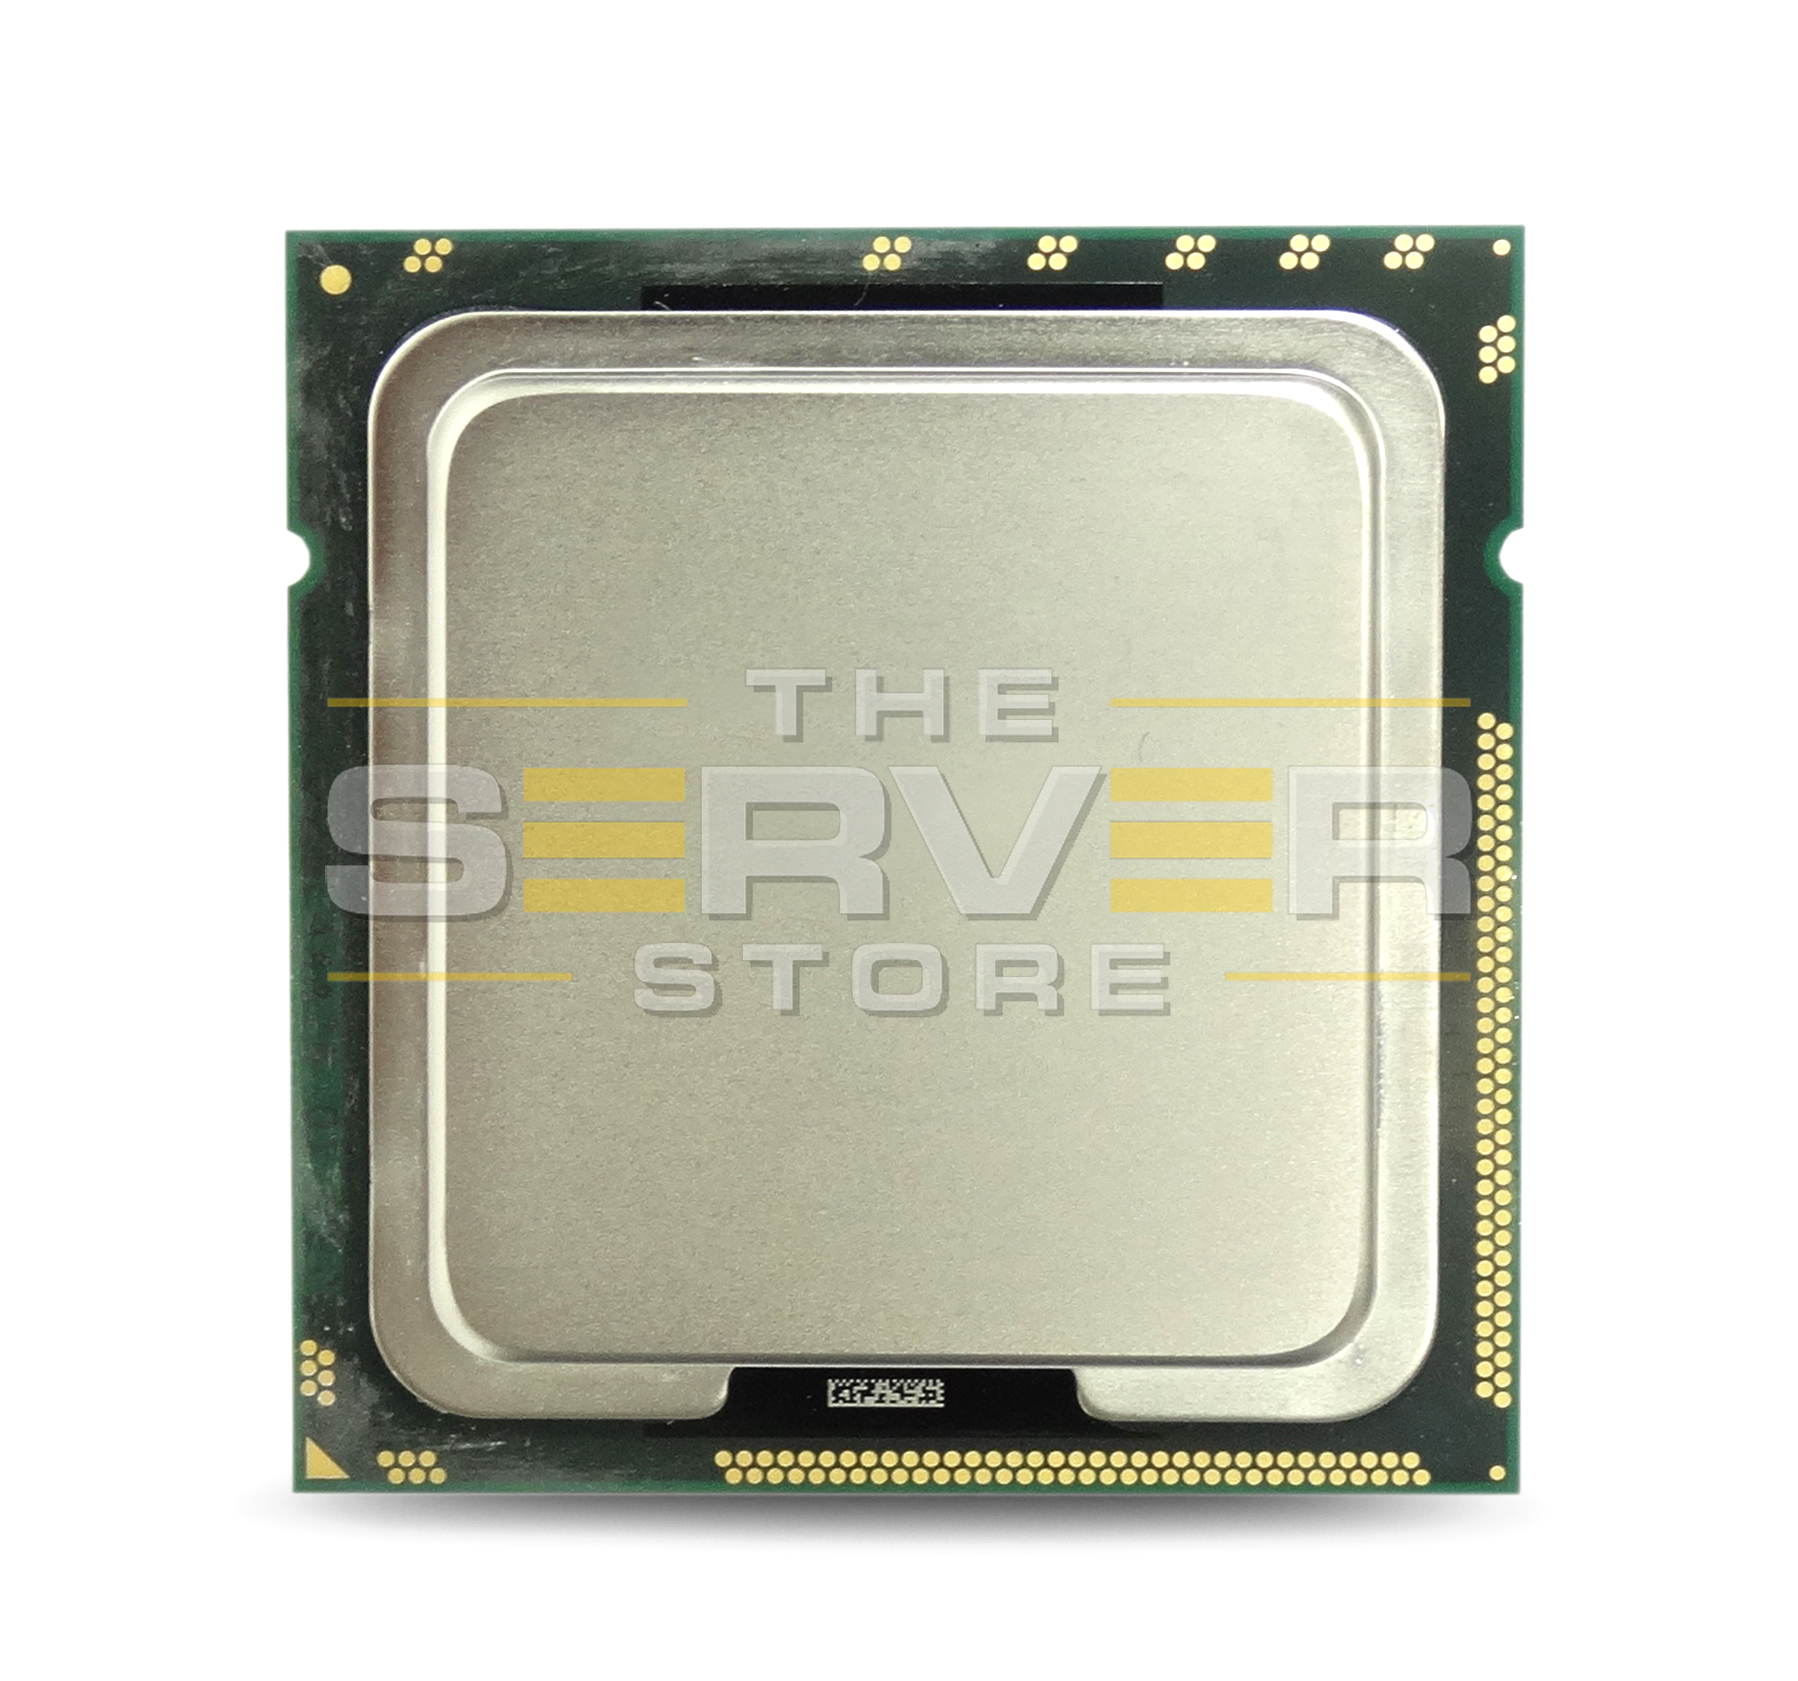 Intel Xeon L5630 2.13GHz Quad Core Processor, SLBVD